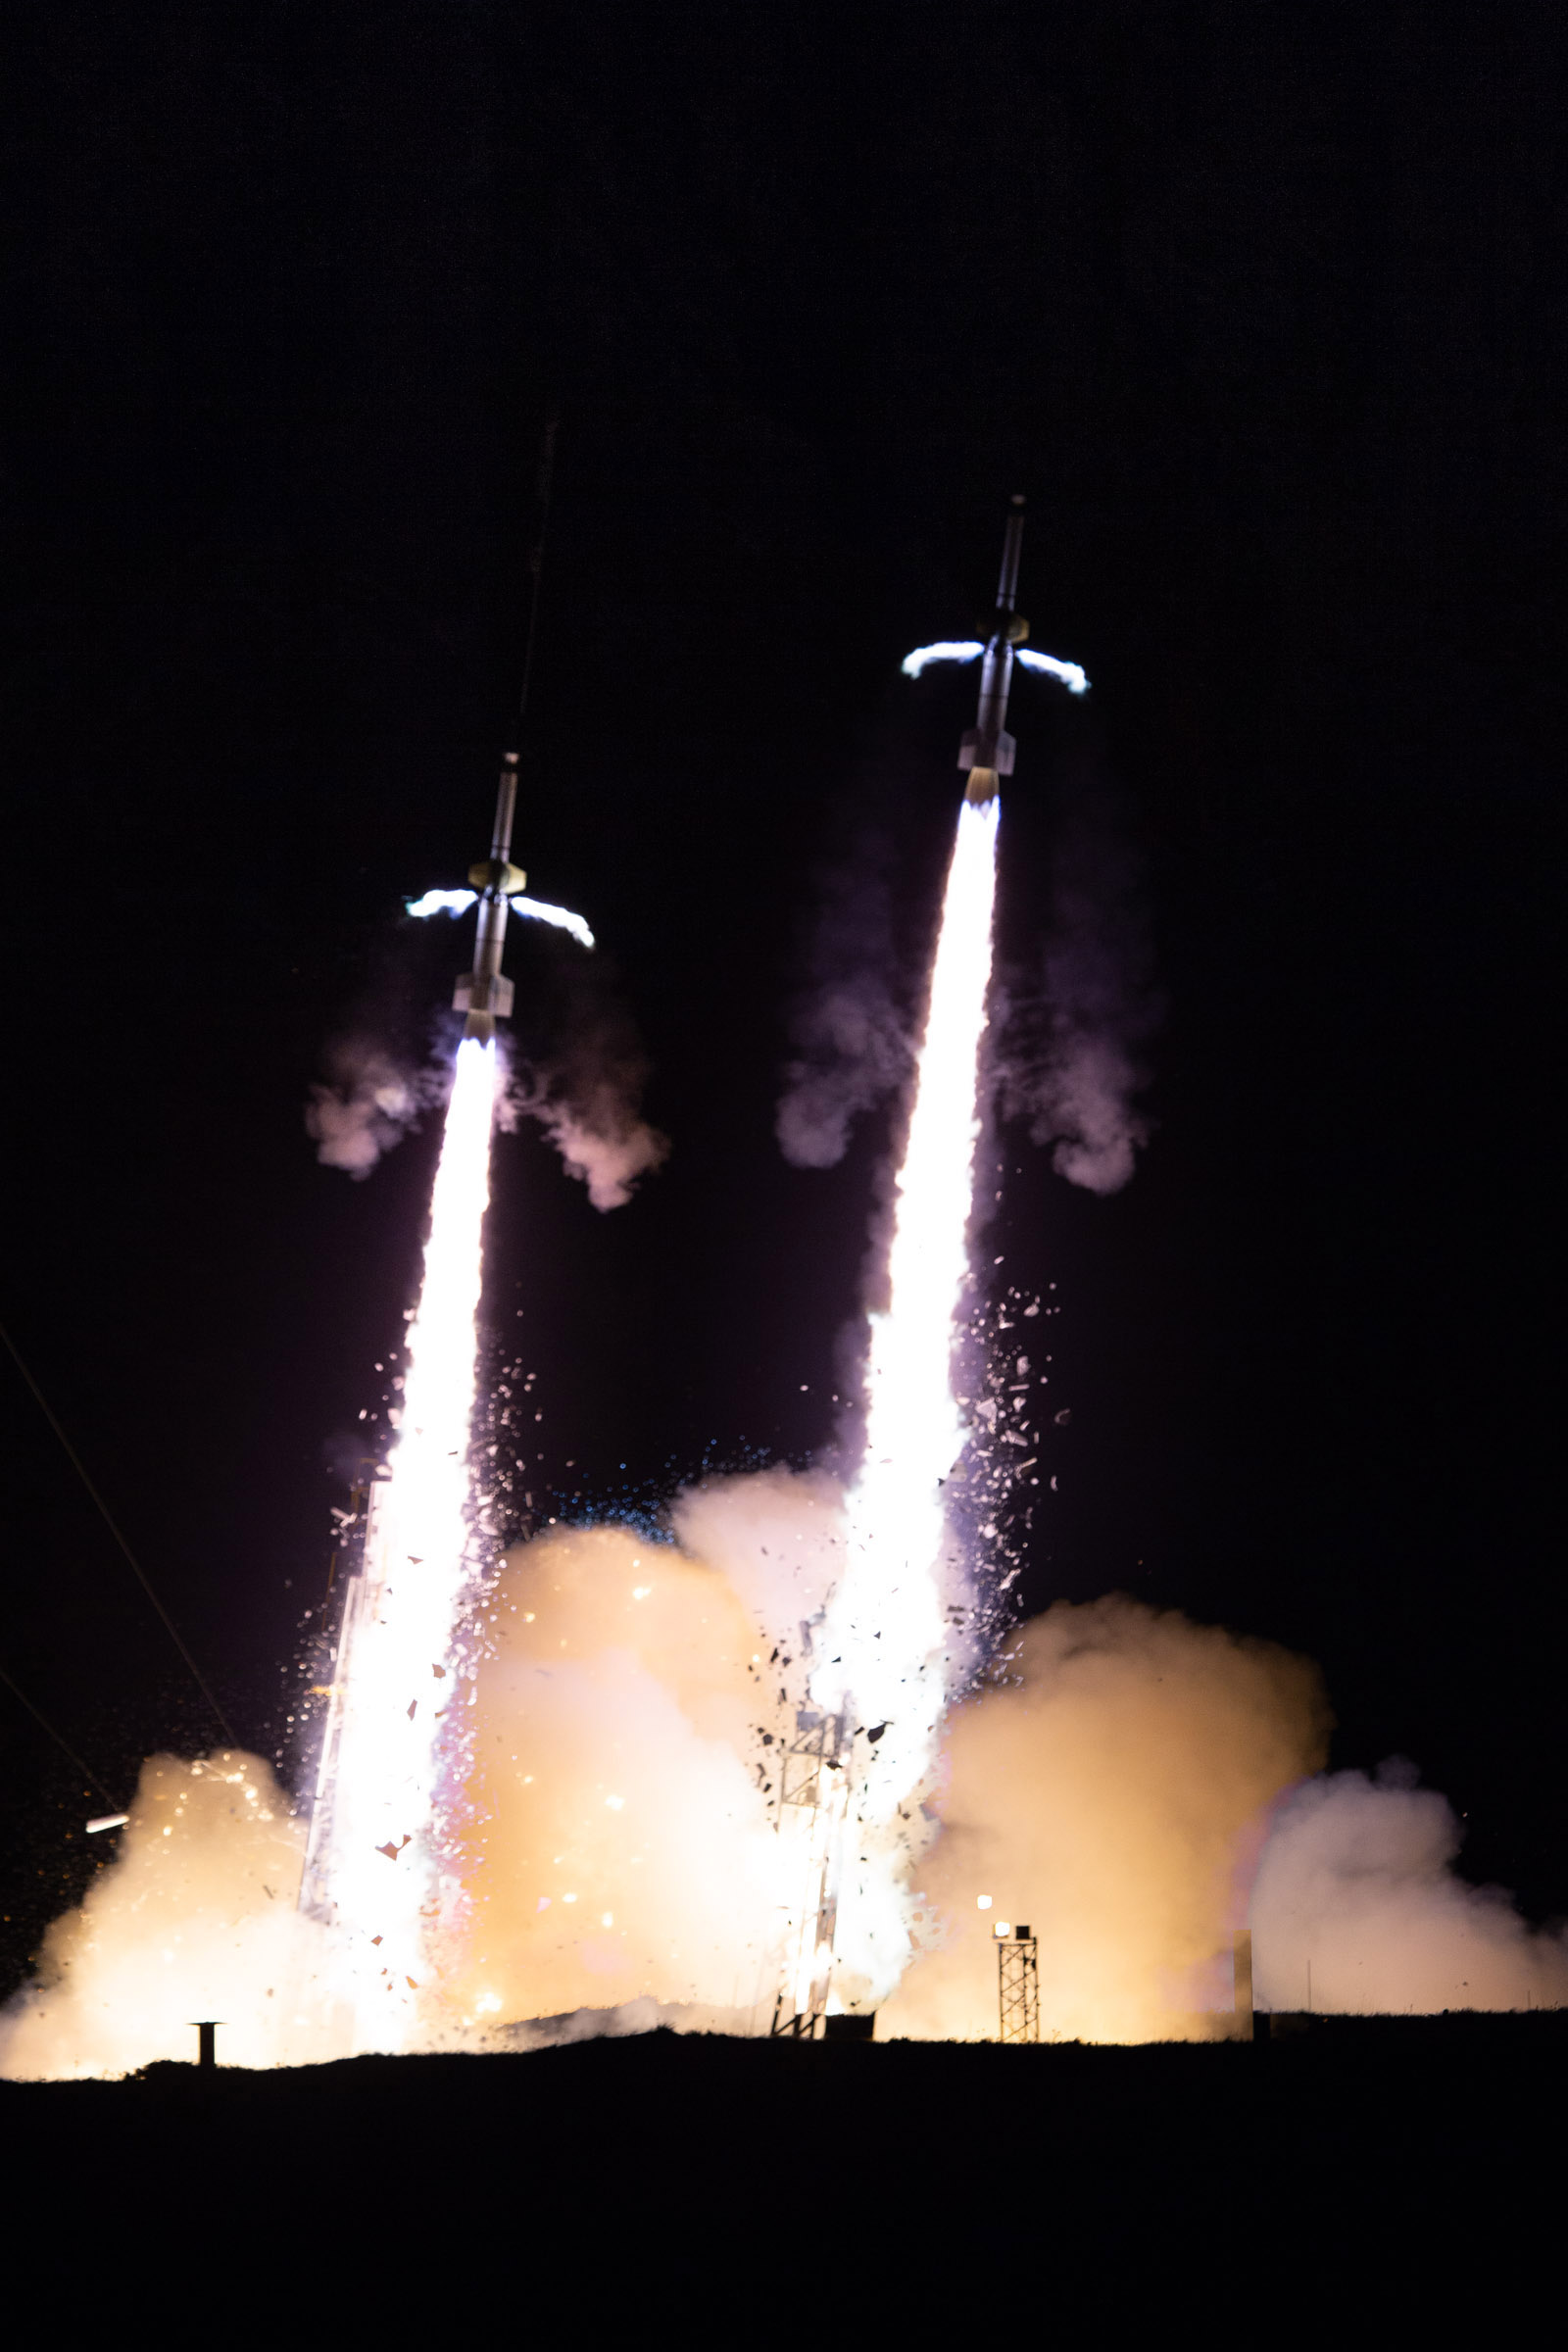 This composite photo shows The Twin Rockets to Investigate Cusp Electrodynamics or TRICE-2 that were launched at 3:26 and 3:28 a.m. EST, Dec. 8, 2018, from the Andoya Space Center in Andenes, Norway. The motors firing on the sides of the first stages spin the rocket to assist in stabilization during flight. The mission is one of nine international missions through January 2020  called the Grand Challenge Initiative - Cusp.  Credit: NASA/Jamie Adkins